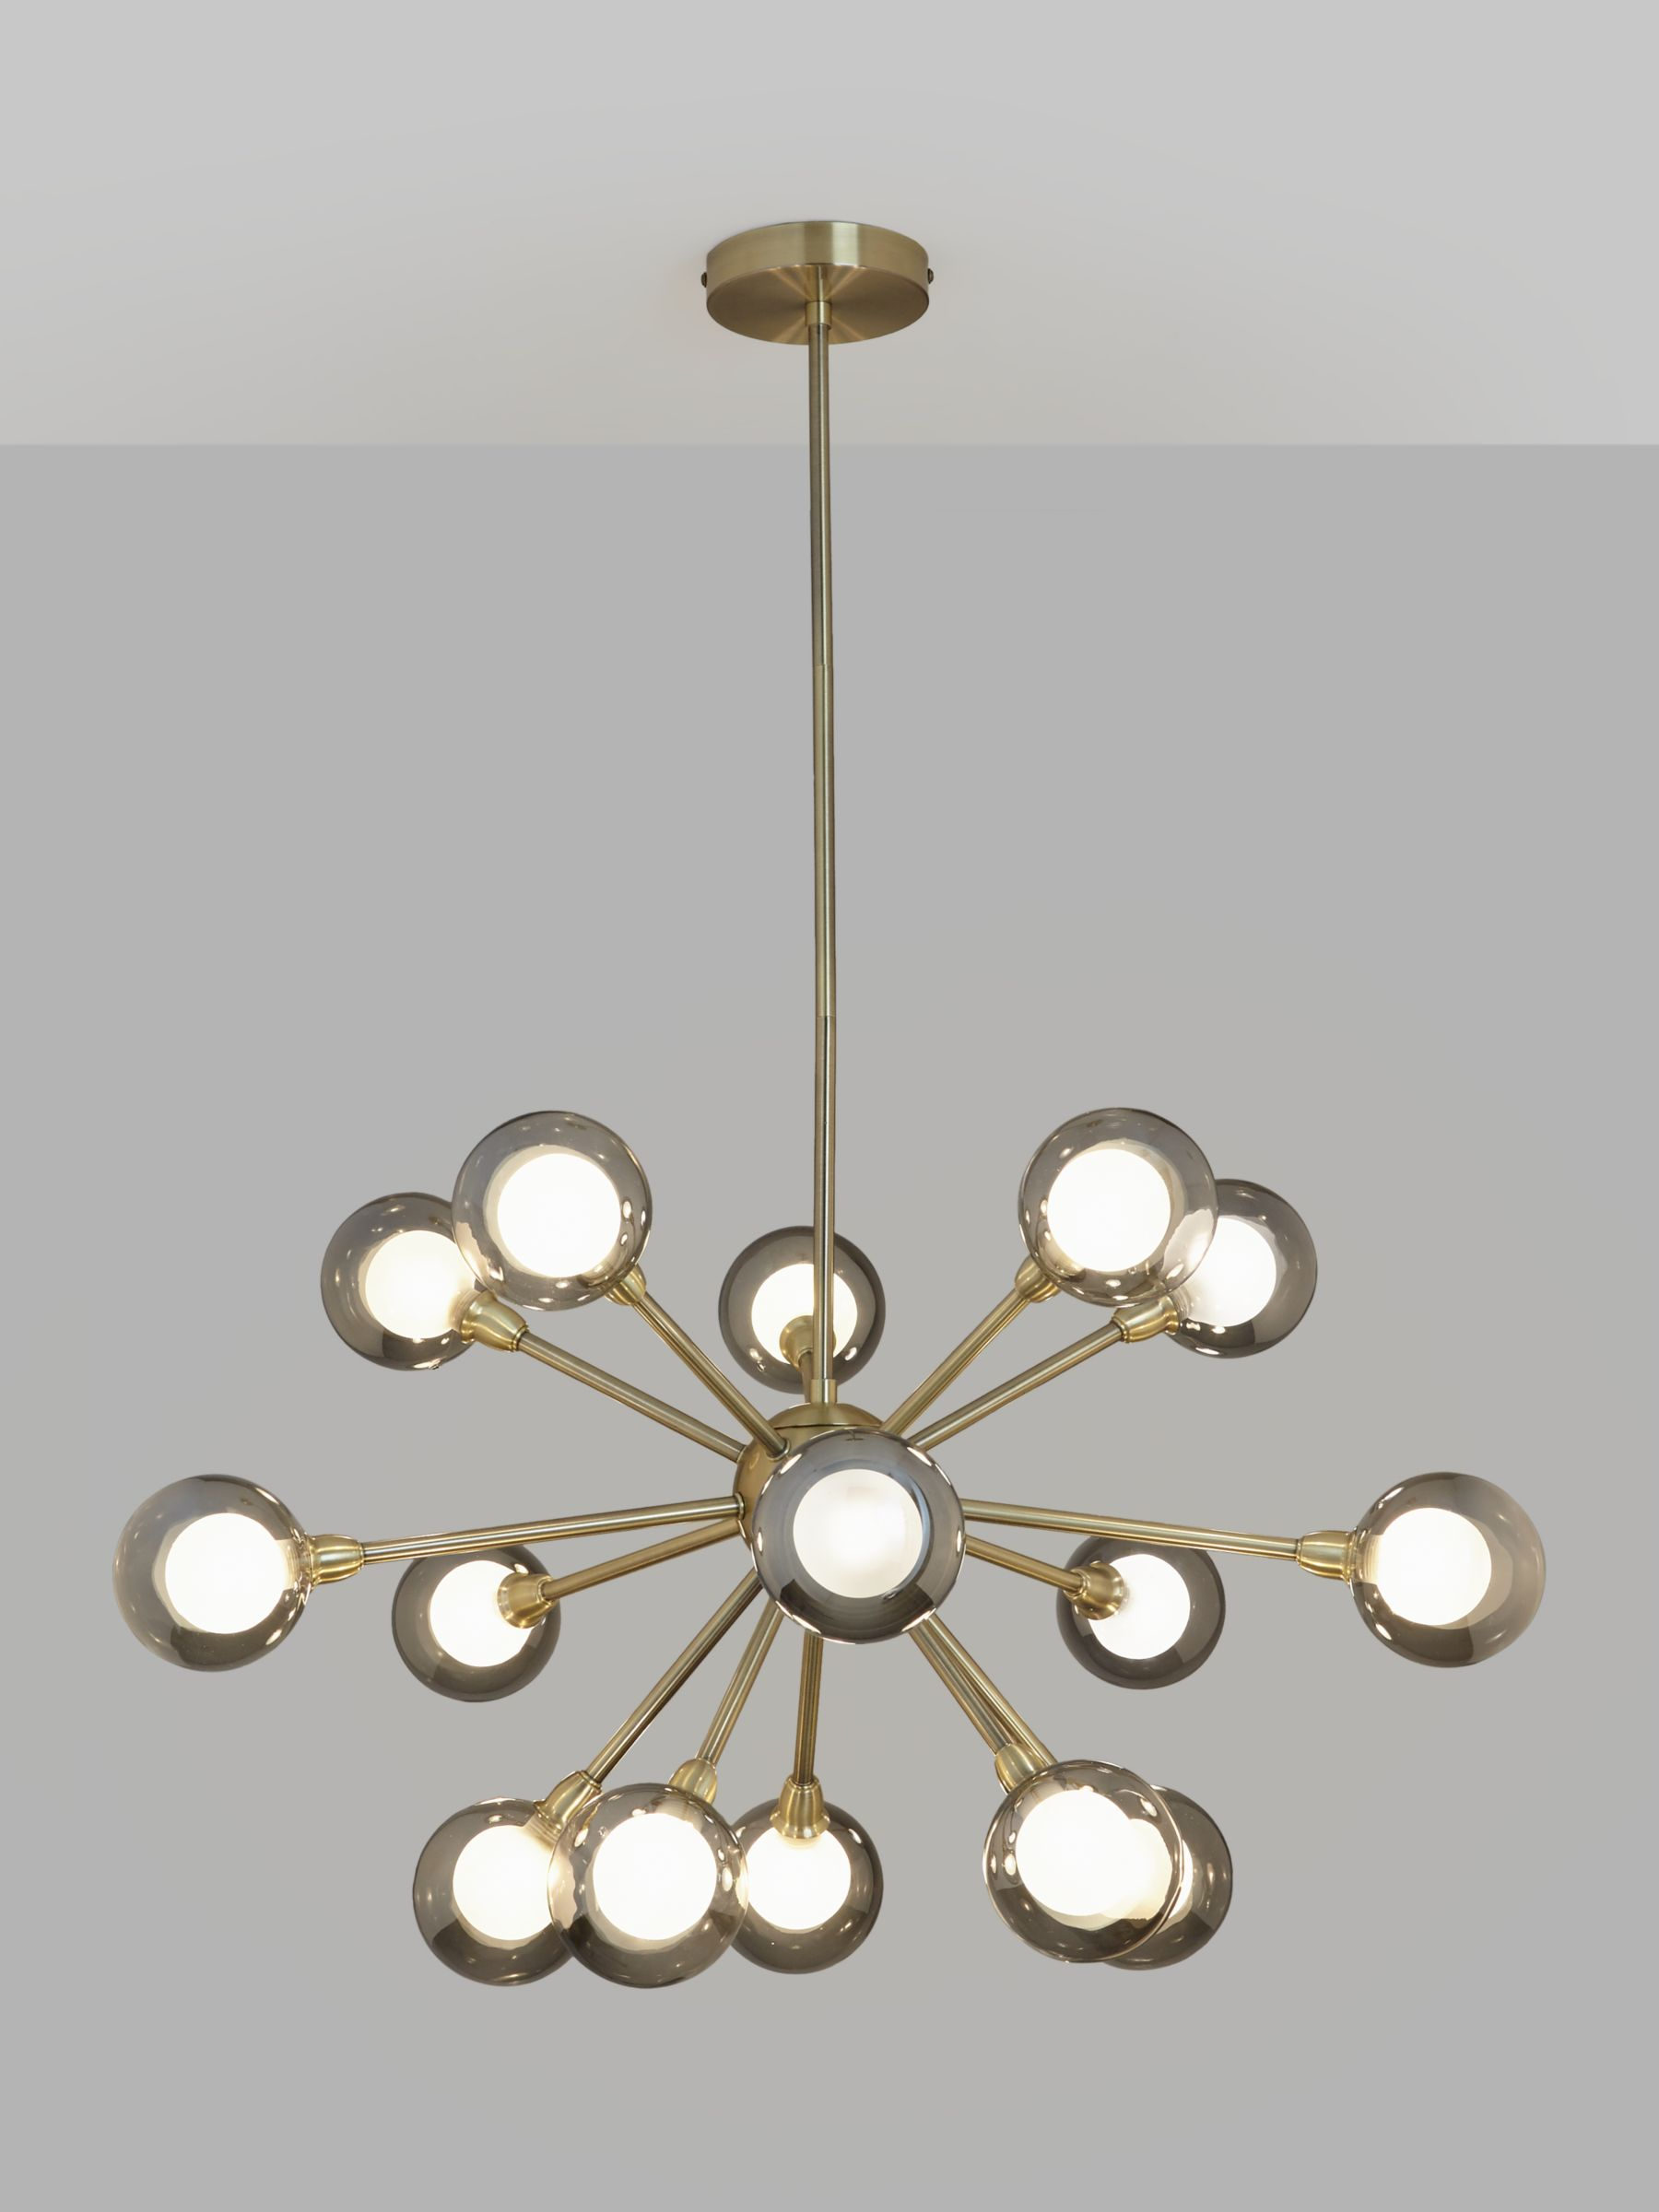 John Lewis Partners Huxley Chandelier Ceiling Light Smoke Antique Brass At John Lewis Partners